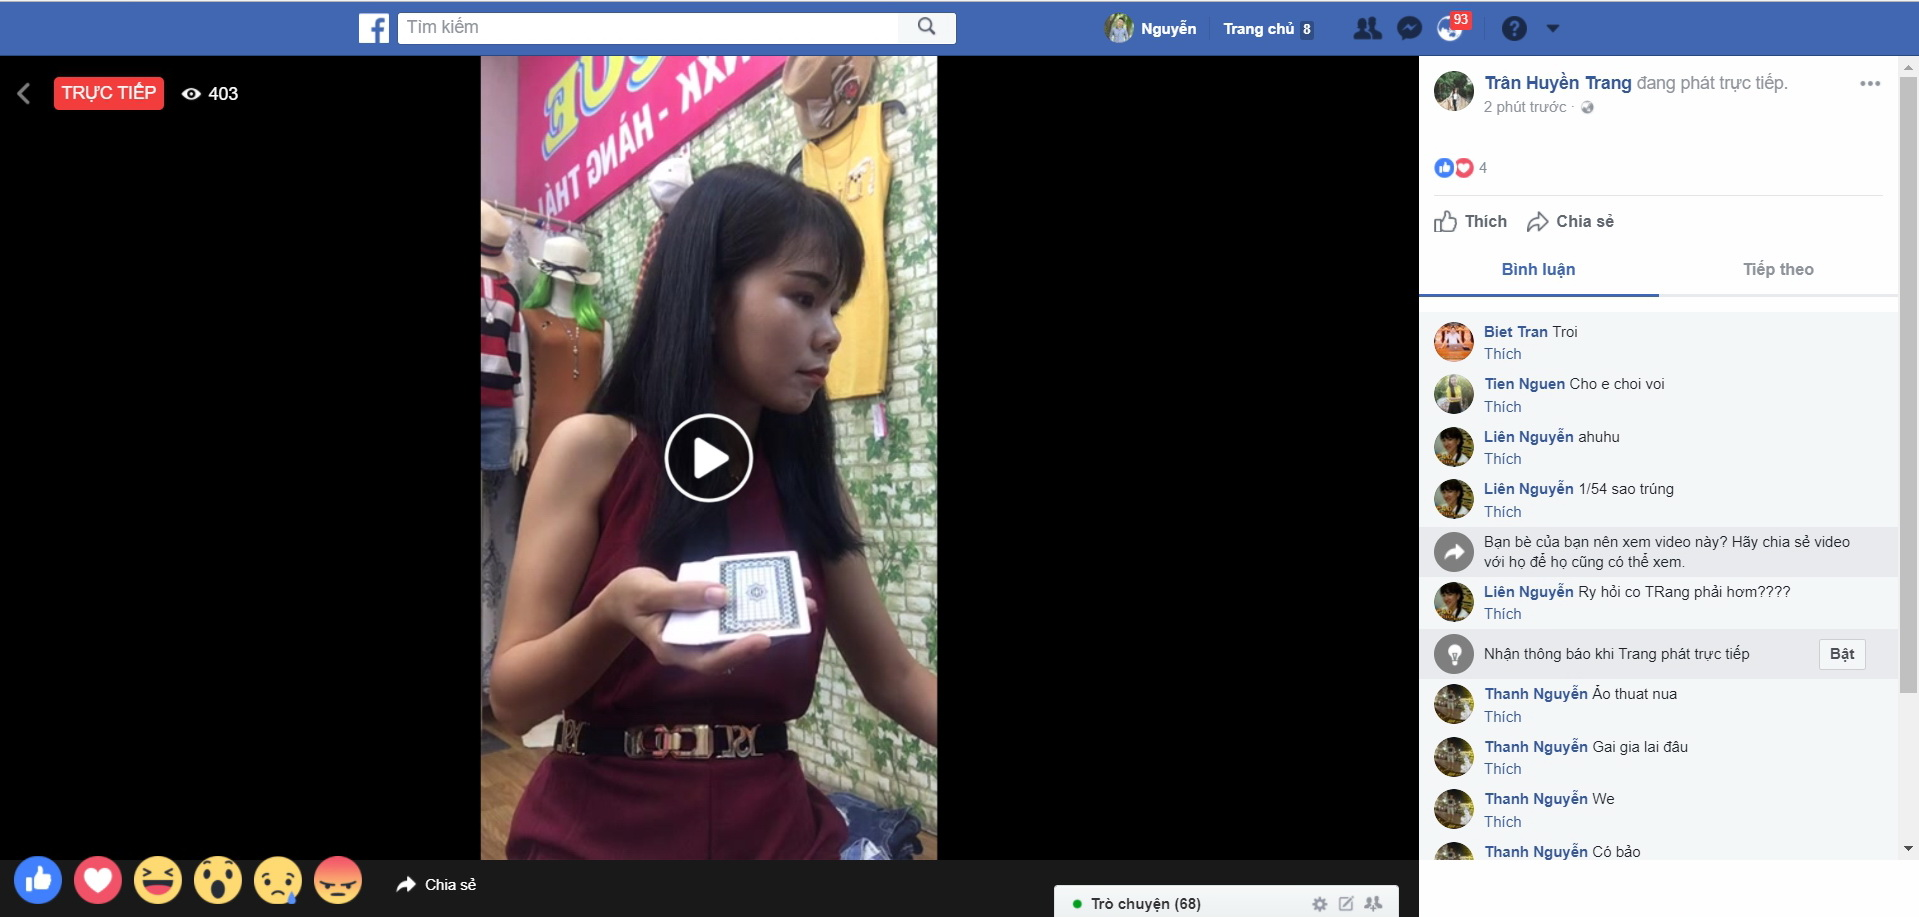 livestream trên facebook, tiktok, youtube